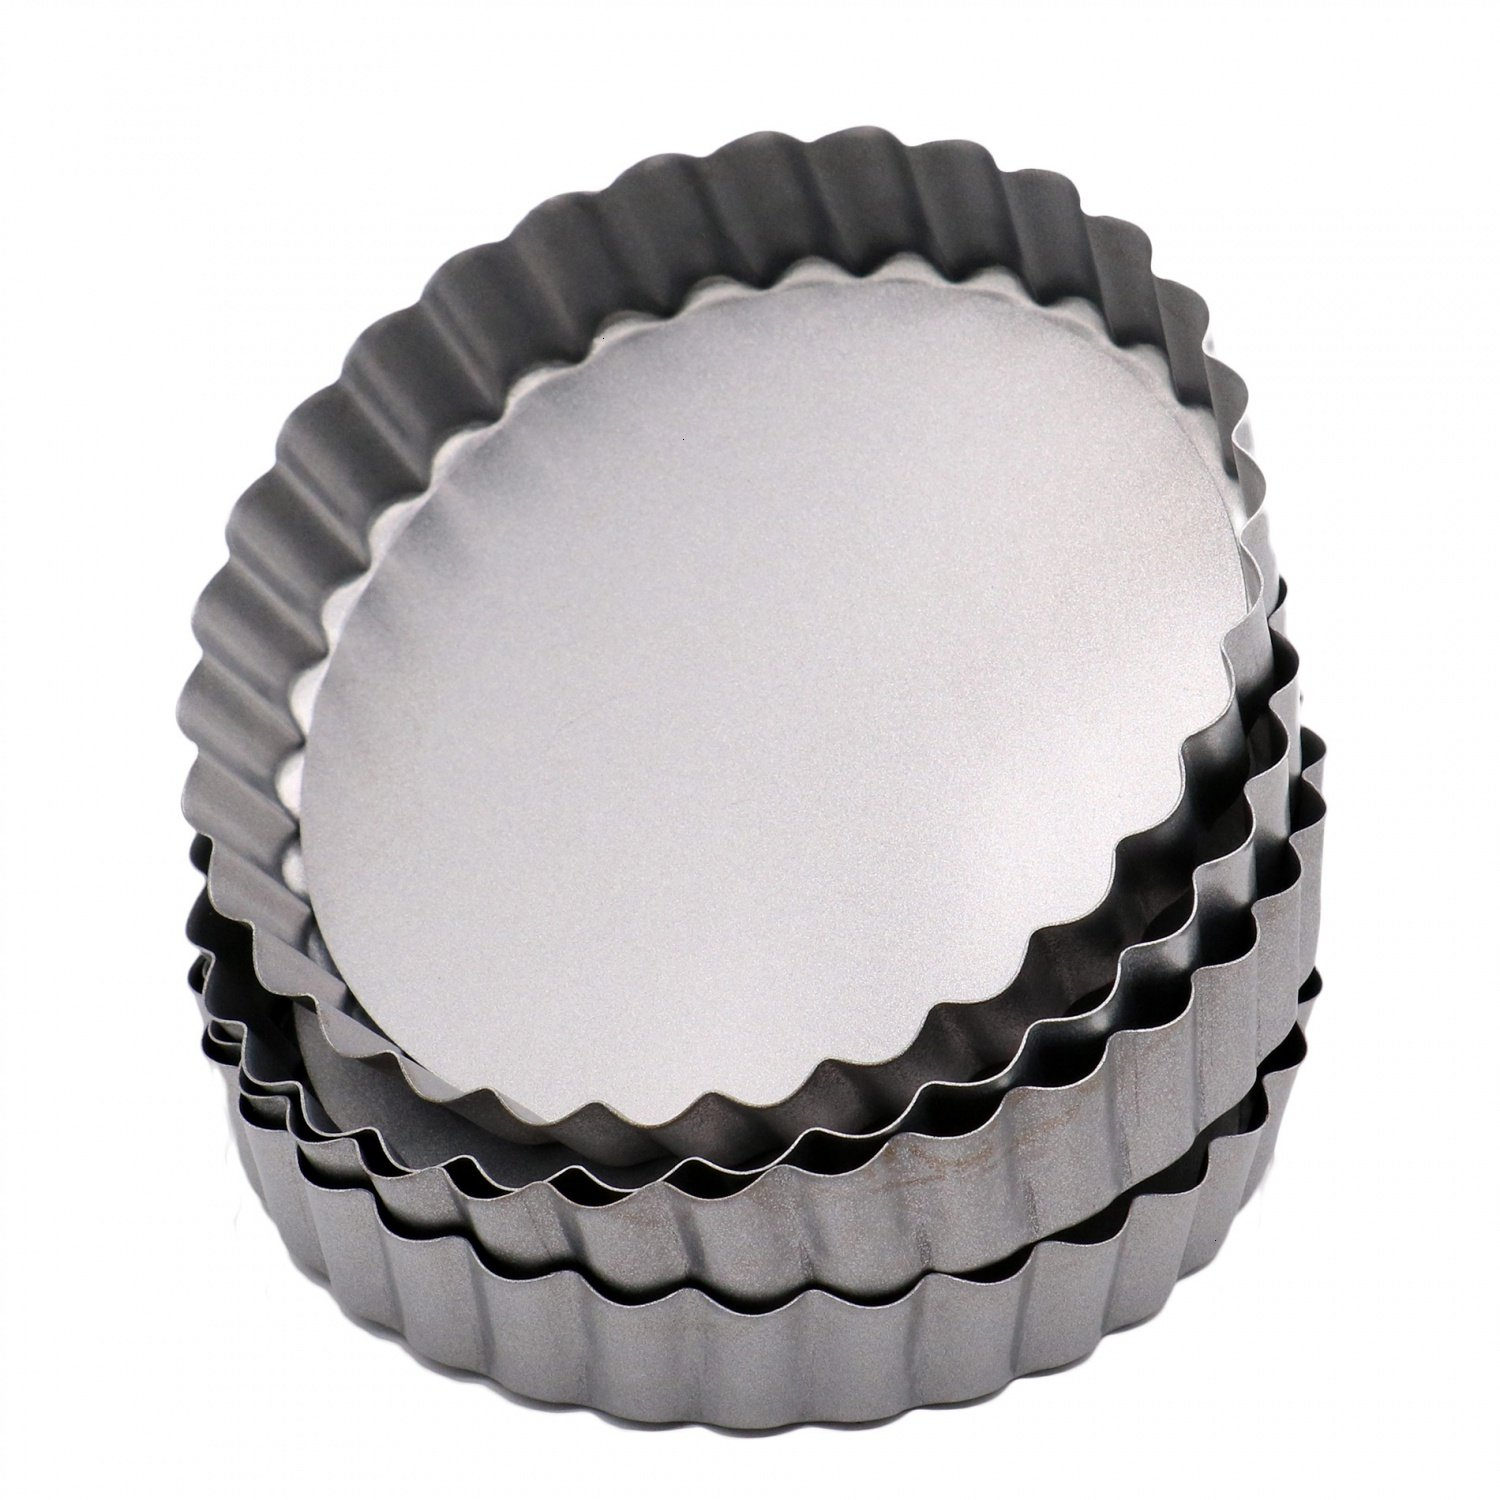 RTNOW Quiche Pans, Pack of 4 Commercial Grade Non Stick Removable Bottom 5 Inch Mini Tart Pans